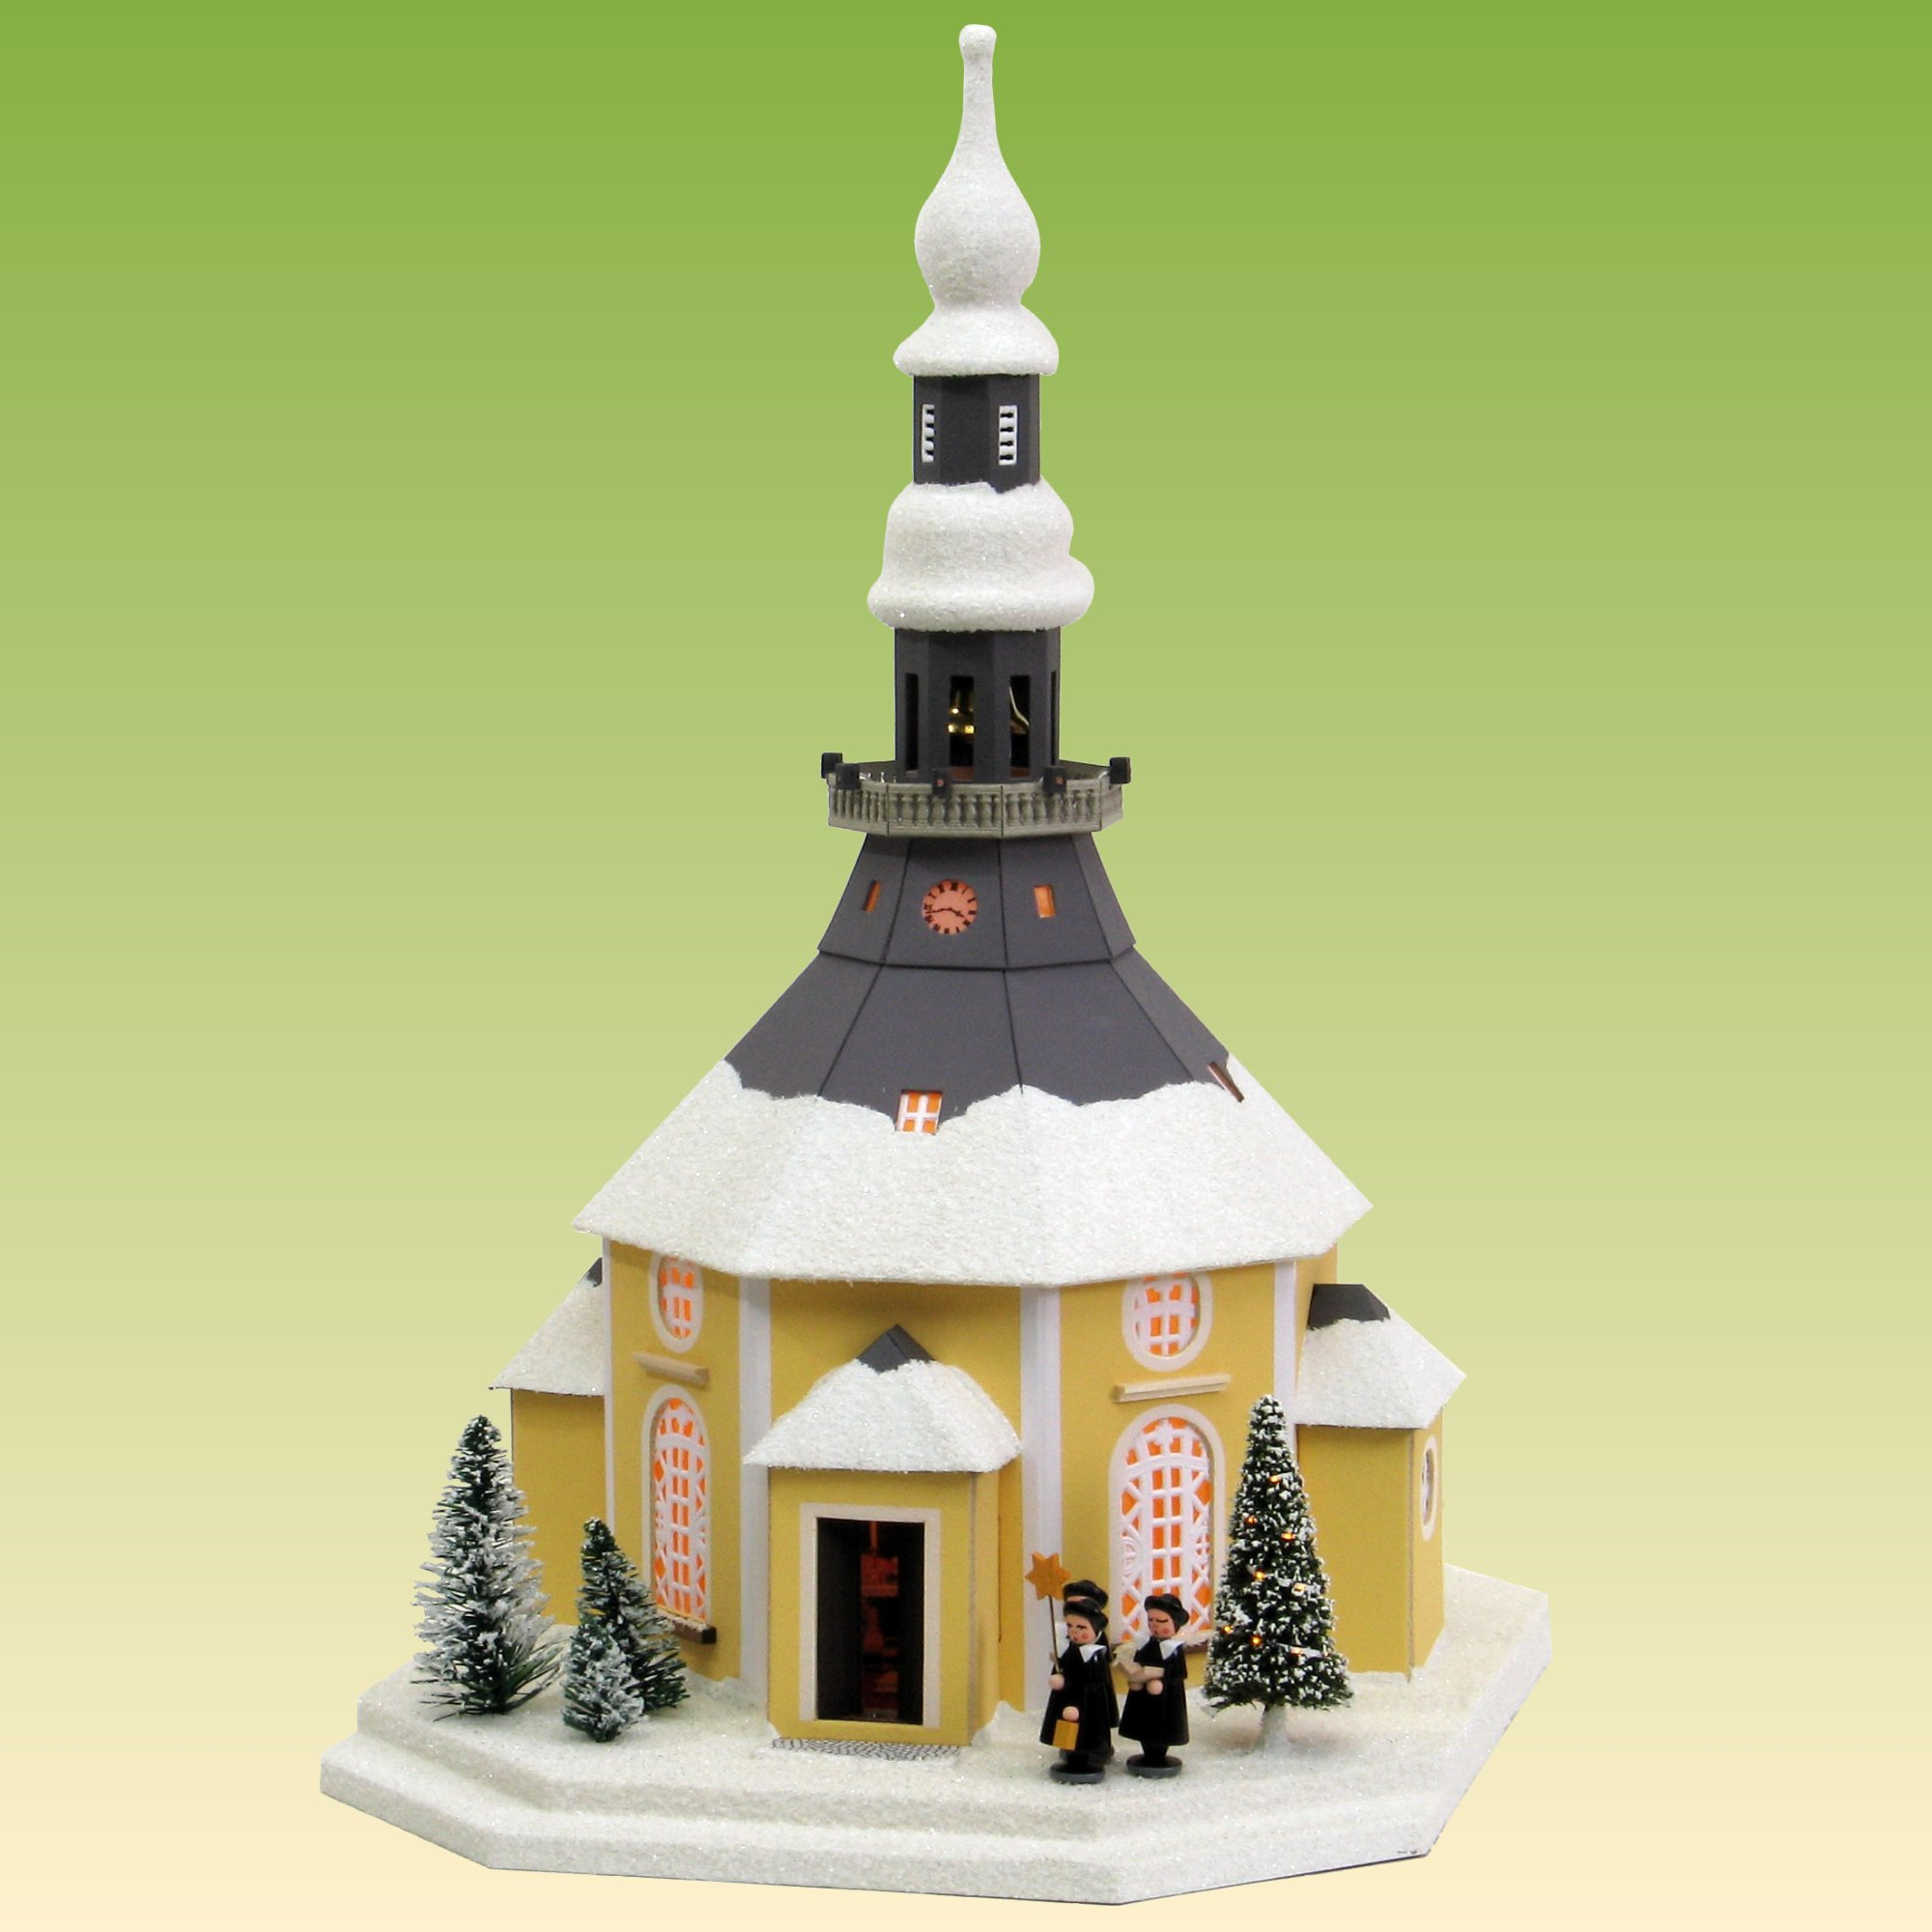 lichterhaus seiffner kirche mit weihnachtsbaum. Black Bedroom Furniture Sets. Home Design Ideas